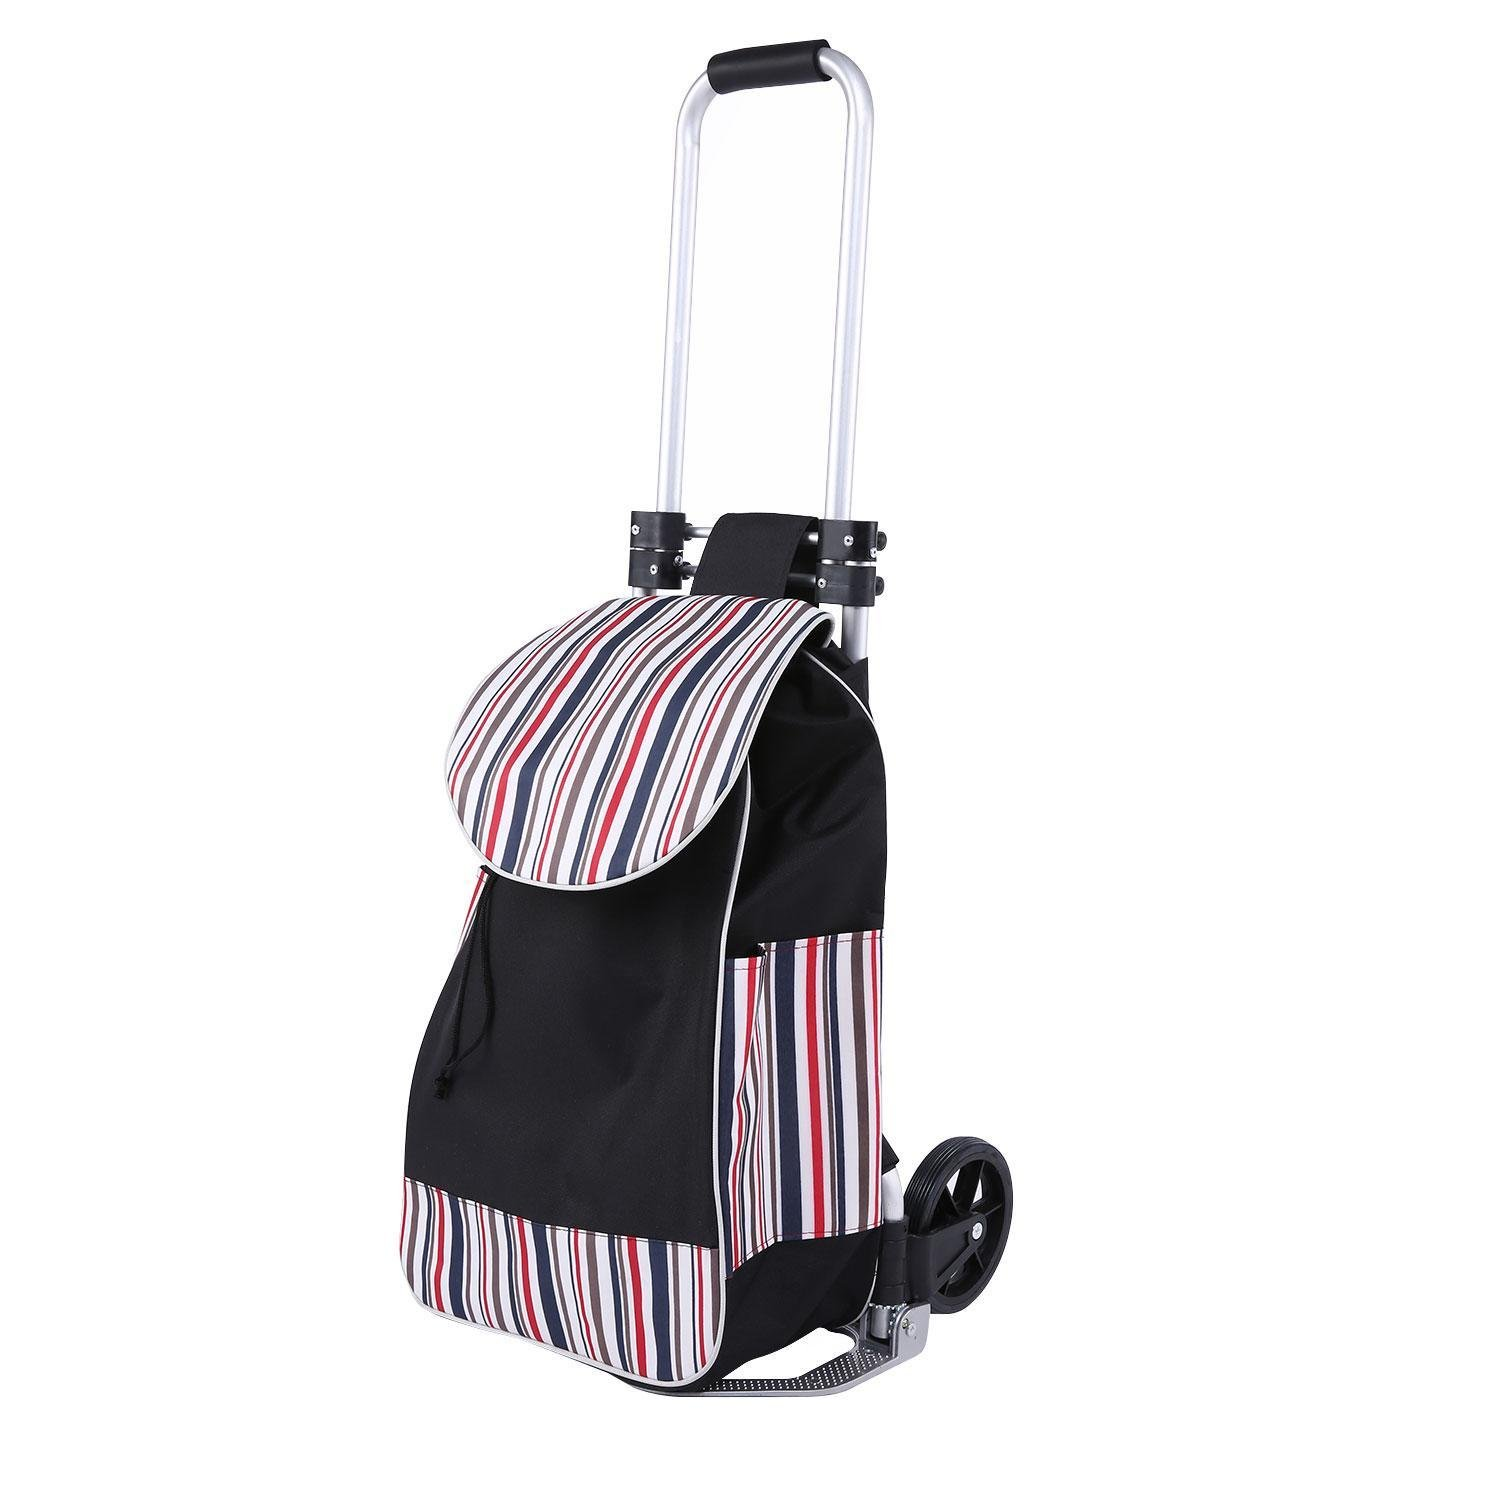 Creine Multipurpose Folding Shopping Cart Trolley Dolly, Waterproof Grocery Laundry Utility Cart Portable Luggage Carrier with Big Bag for Laundry, Grocery, Shopping and More (US STOCK)